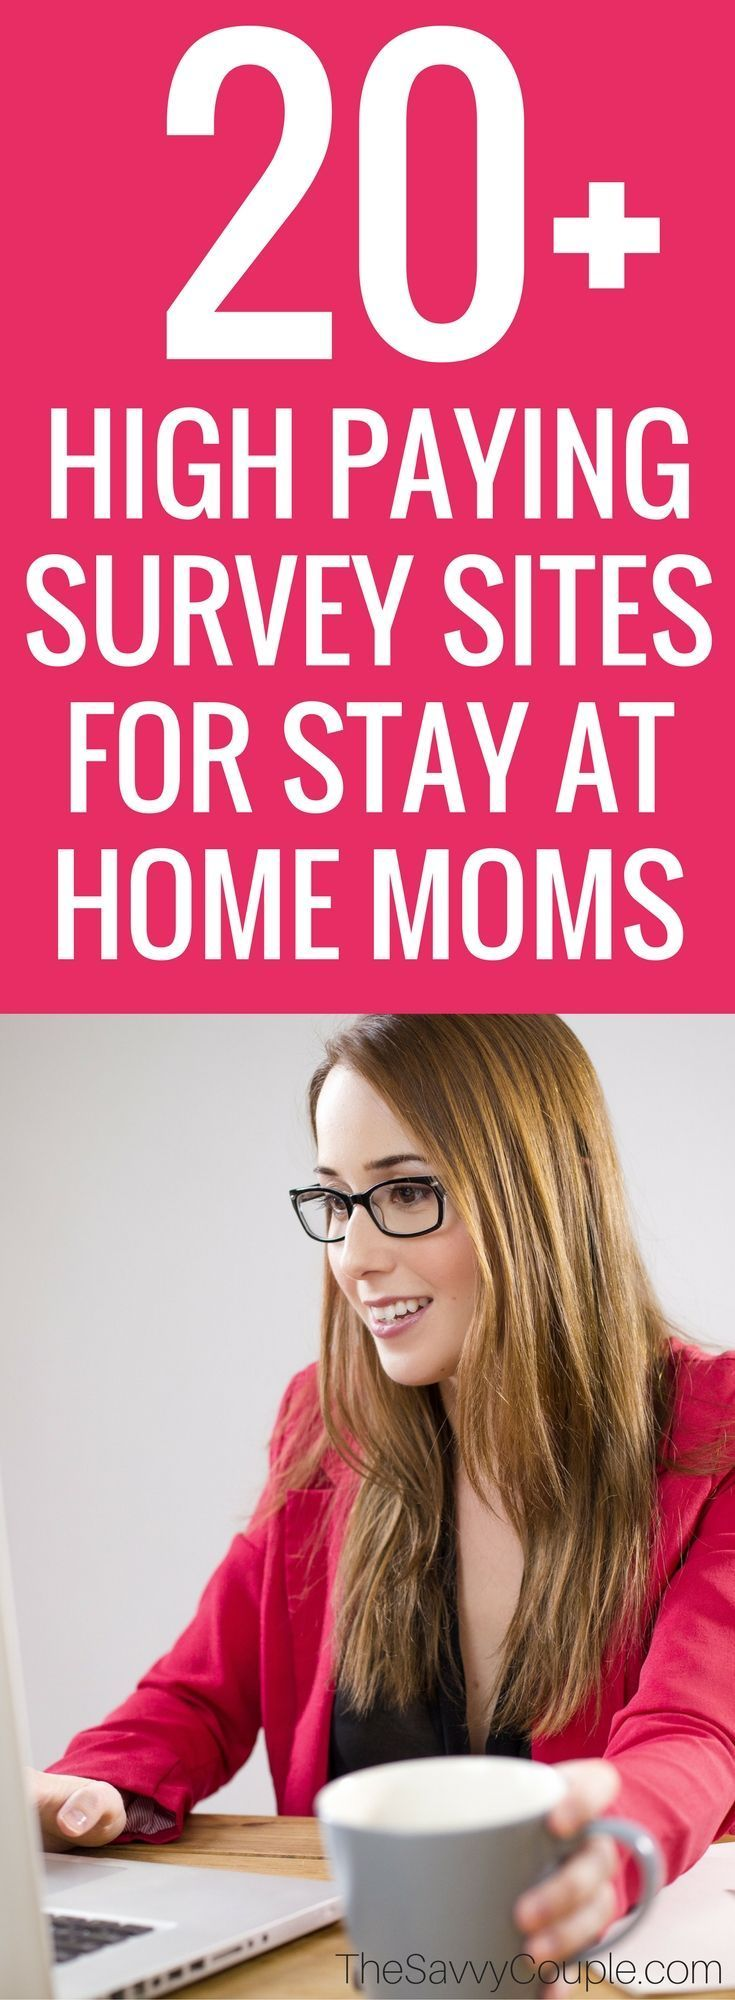 Are you a busy mom who wants to learn how to make some extra money from home? Here are 20 of the best survey companies that we have personally used and approved. We were able to save up money to pay for Christmas one year using these 20 companies! Check them out and start earning extra income today!